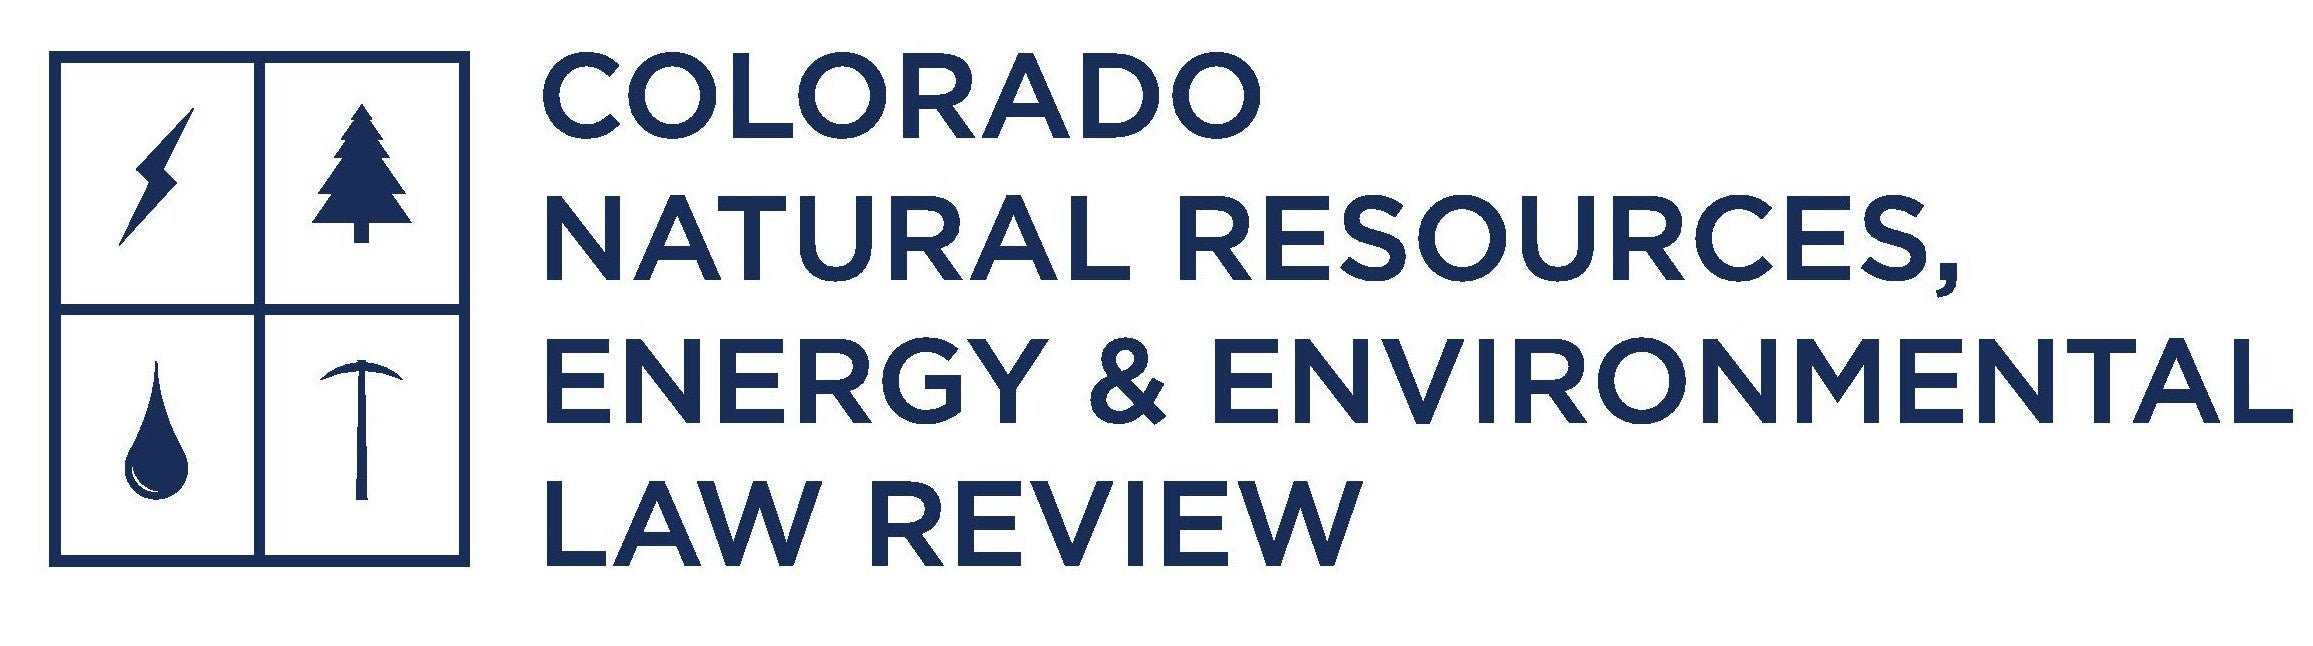 Colorado Natural Resources, Energy, & Environmental Law Review ...